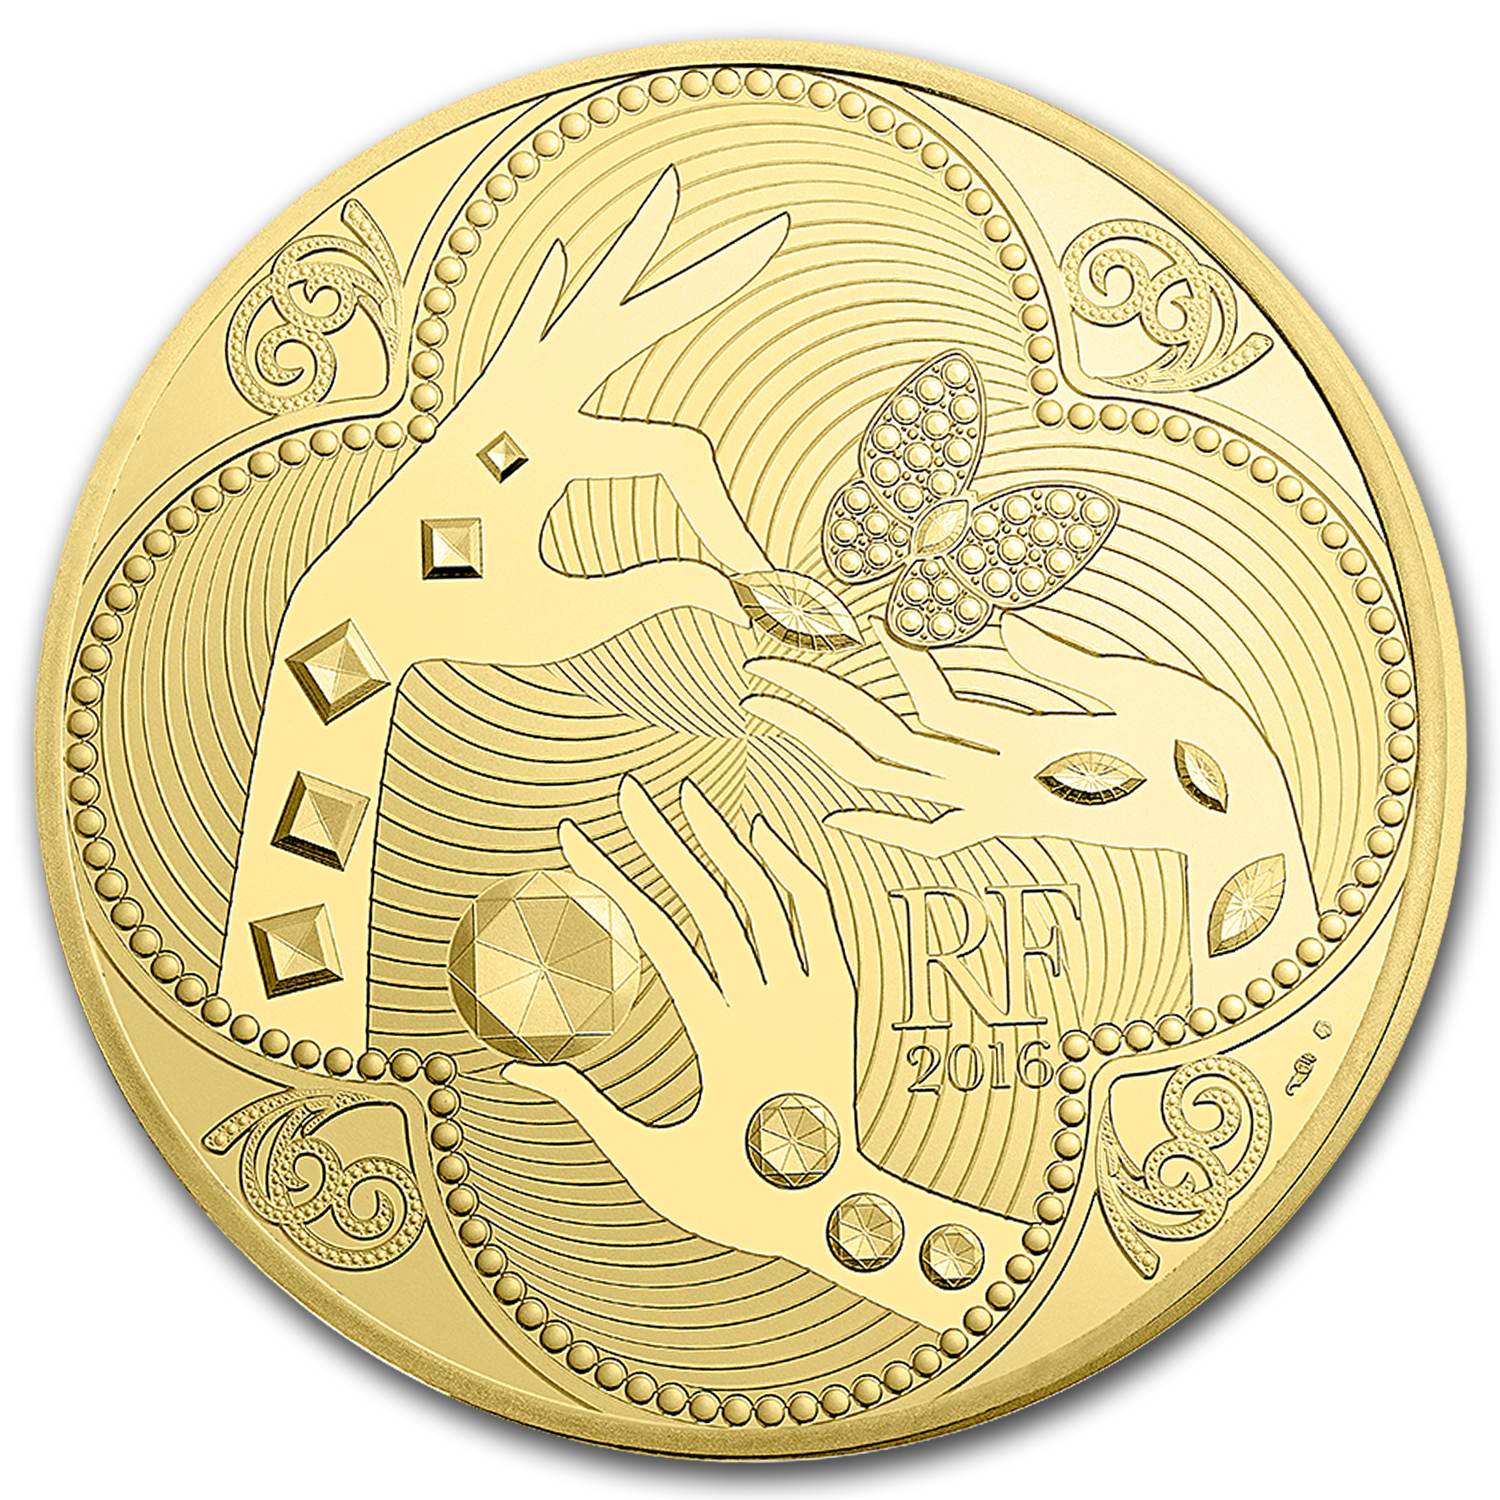 2016 5 oz Proof Gold €500 Excellence Series (Van Cleef & Arpels)